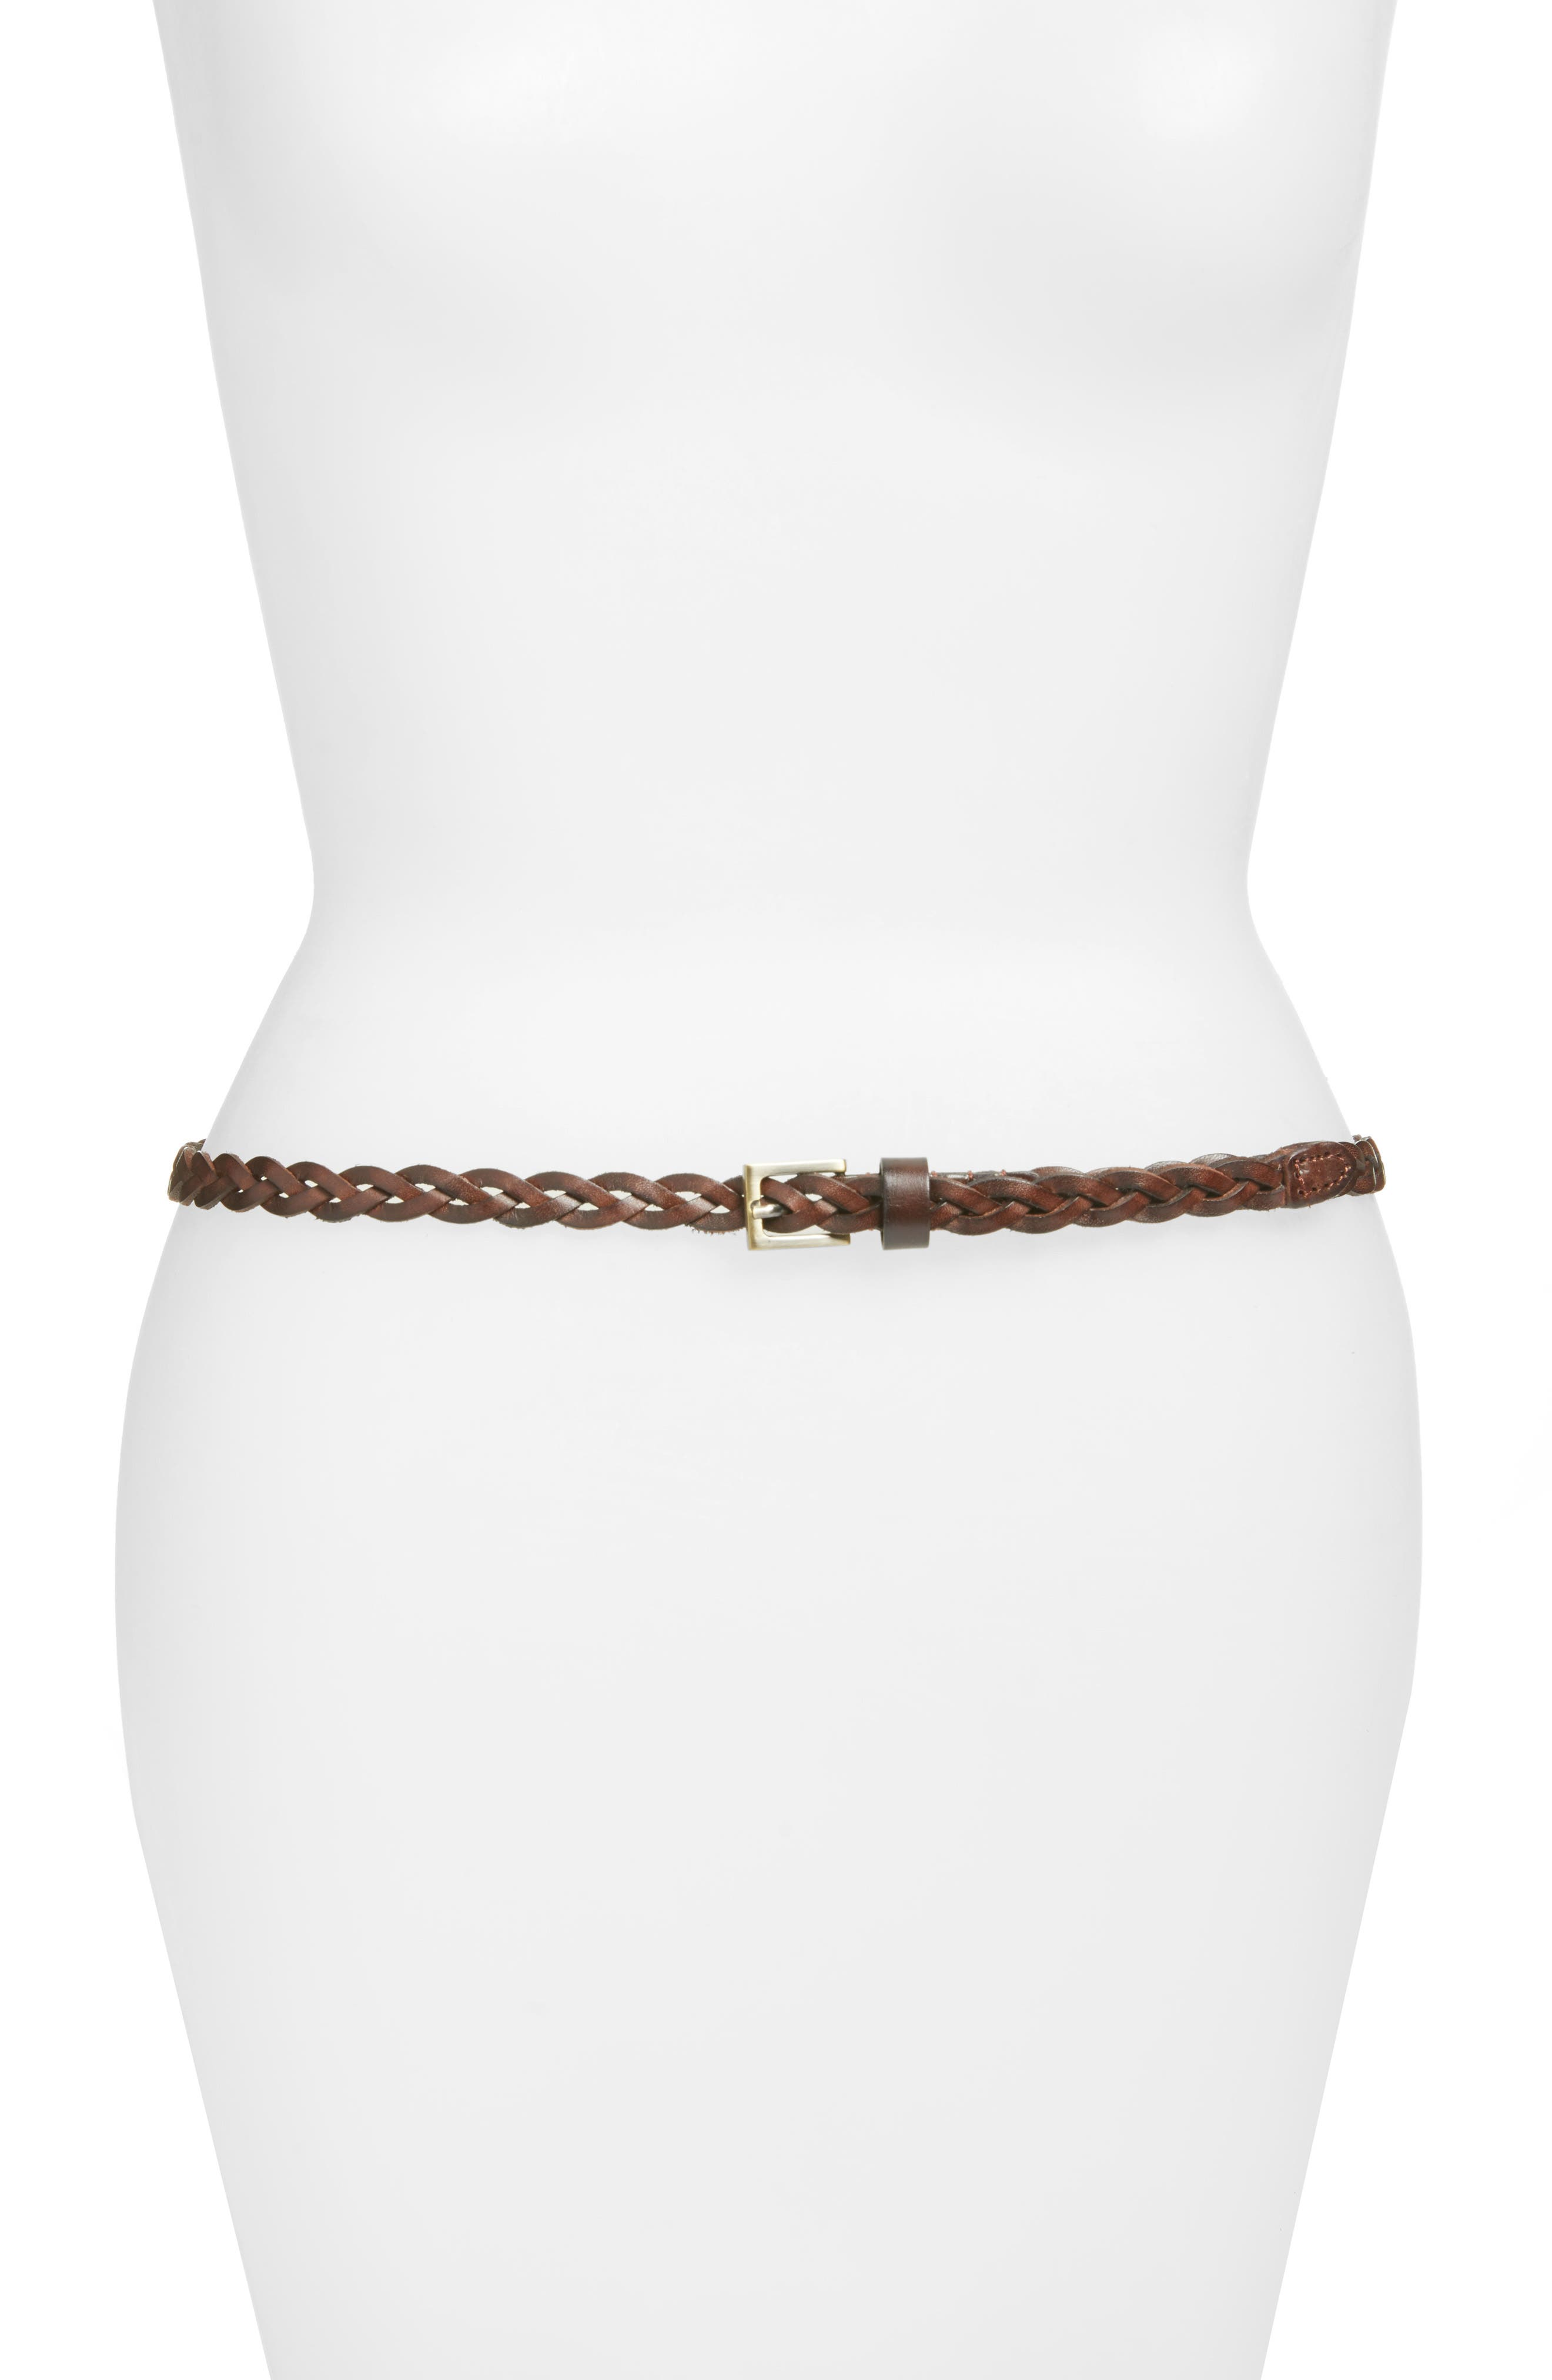 Lawrence Braided Leather Belt,                         Main,                         color, Capp